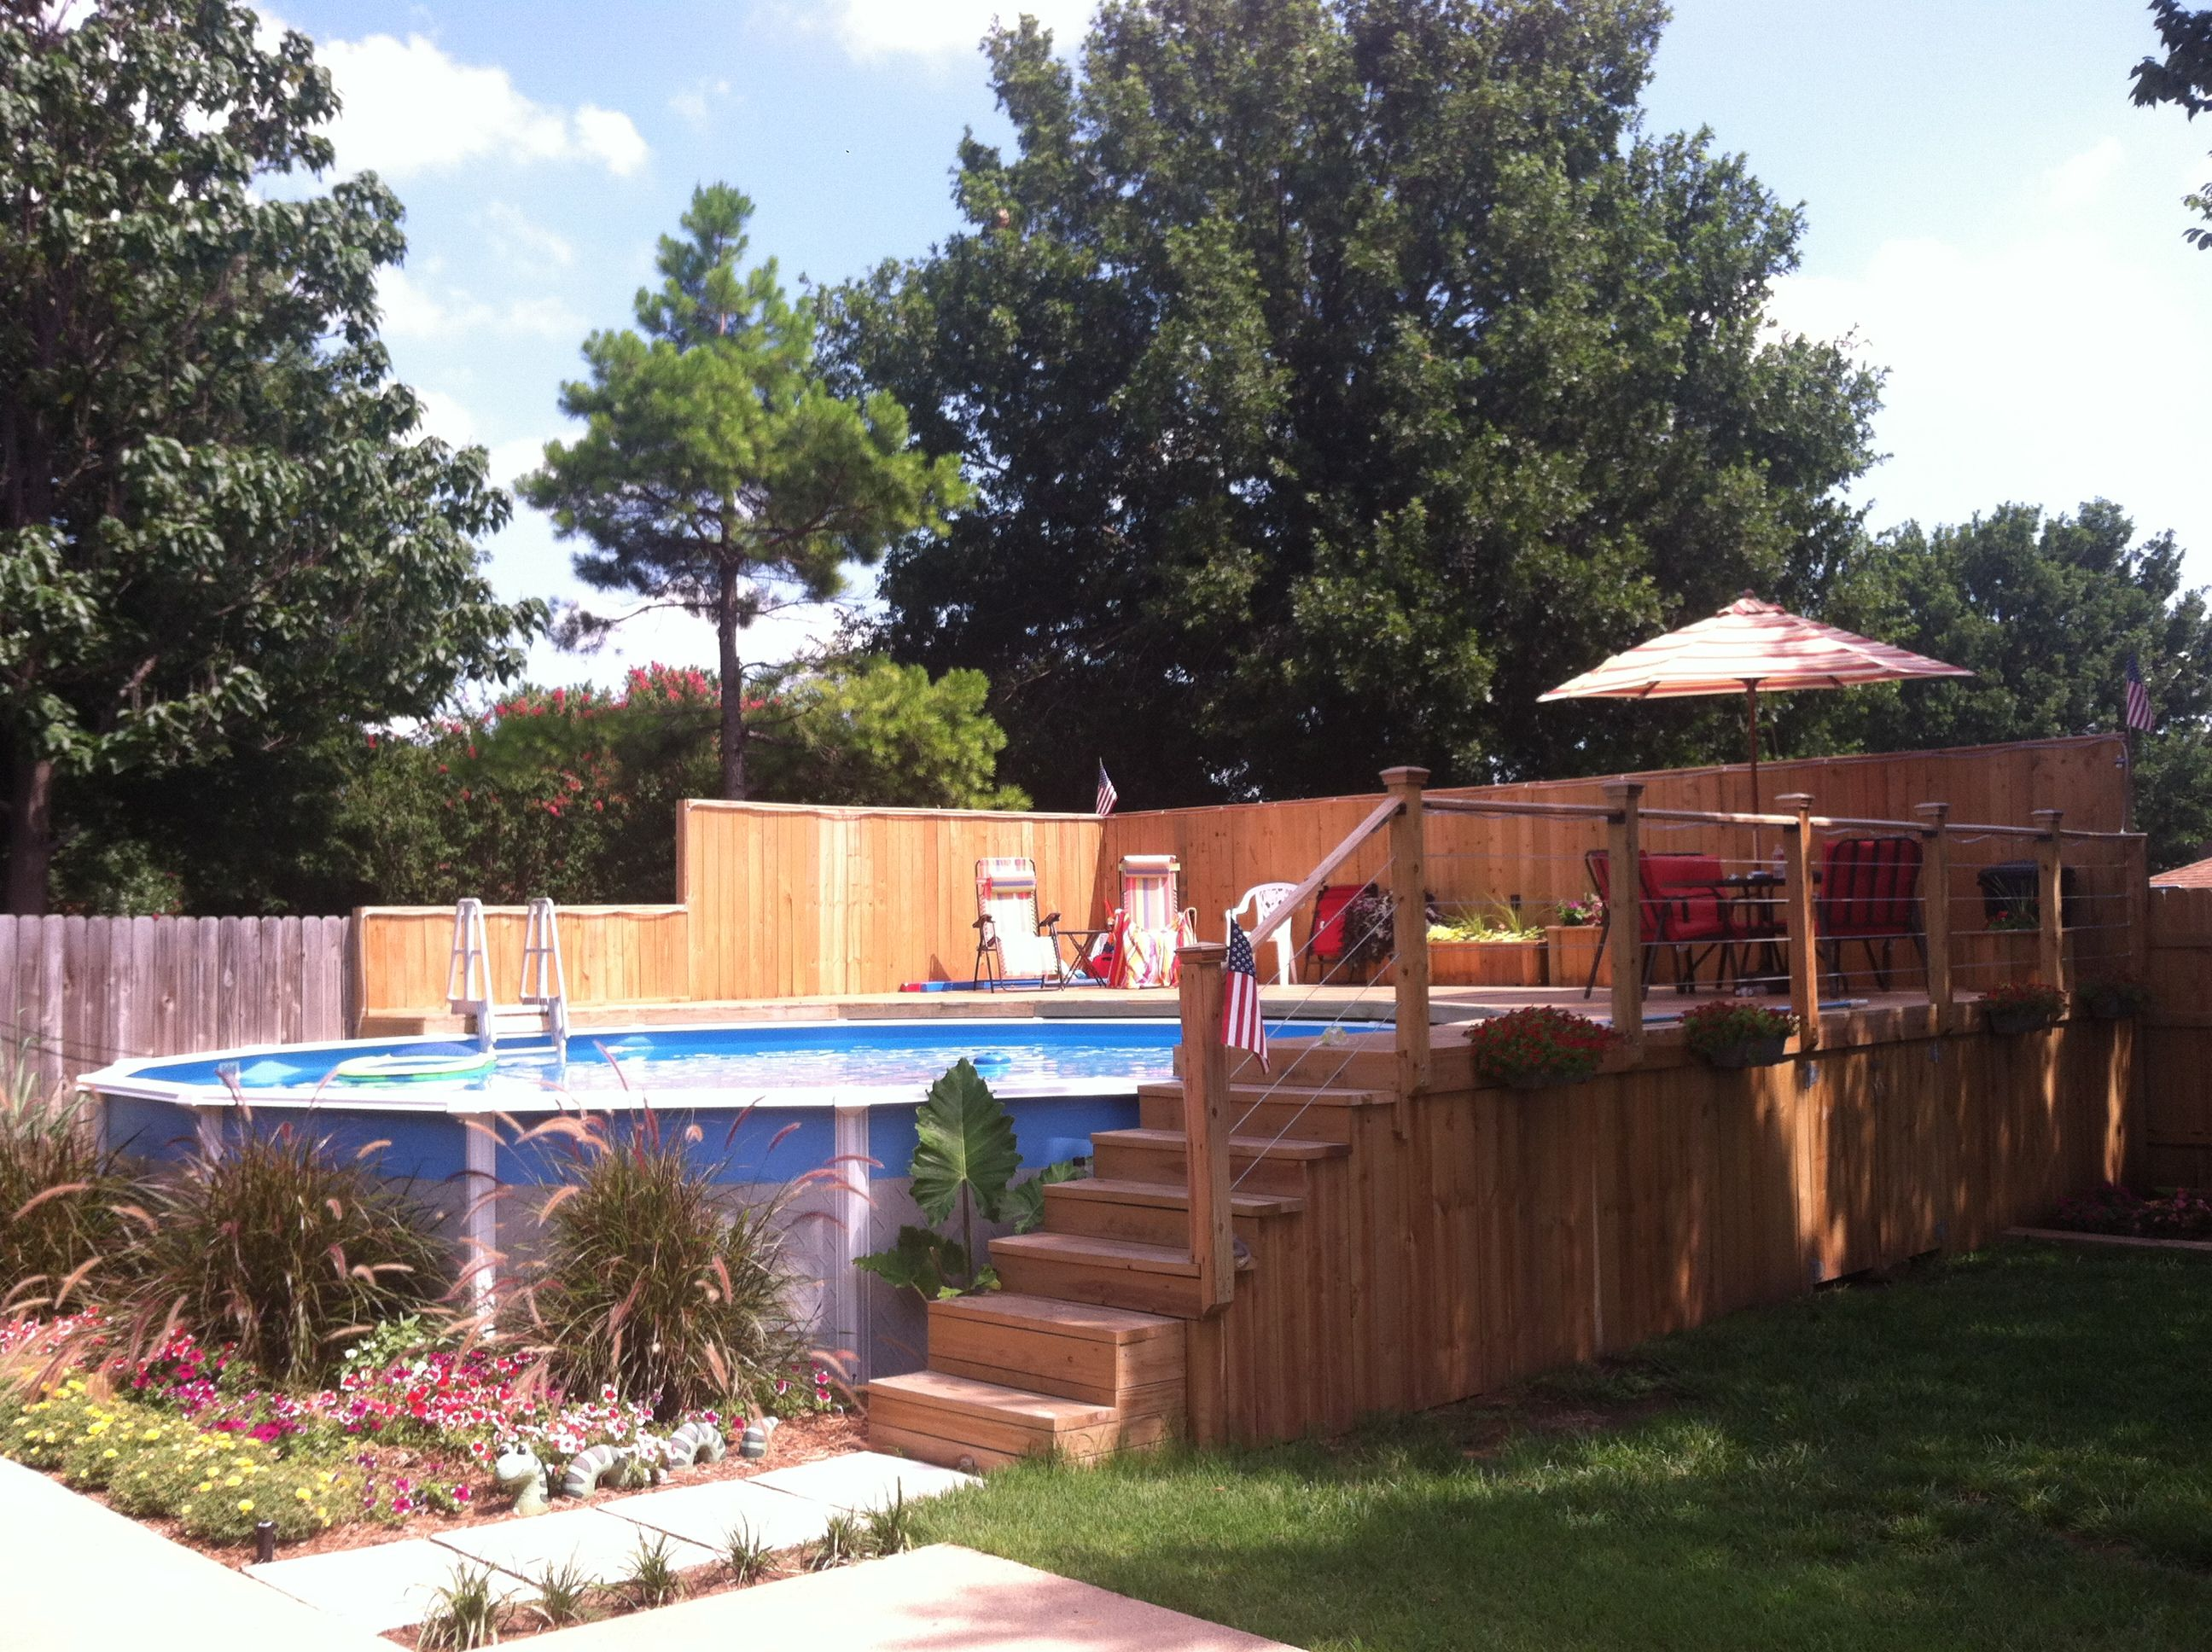 Garden Ideas Around Swimming Pools above ground pool, but build a deck around it and it looks